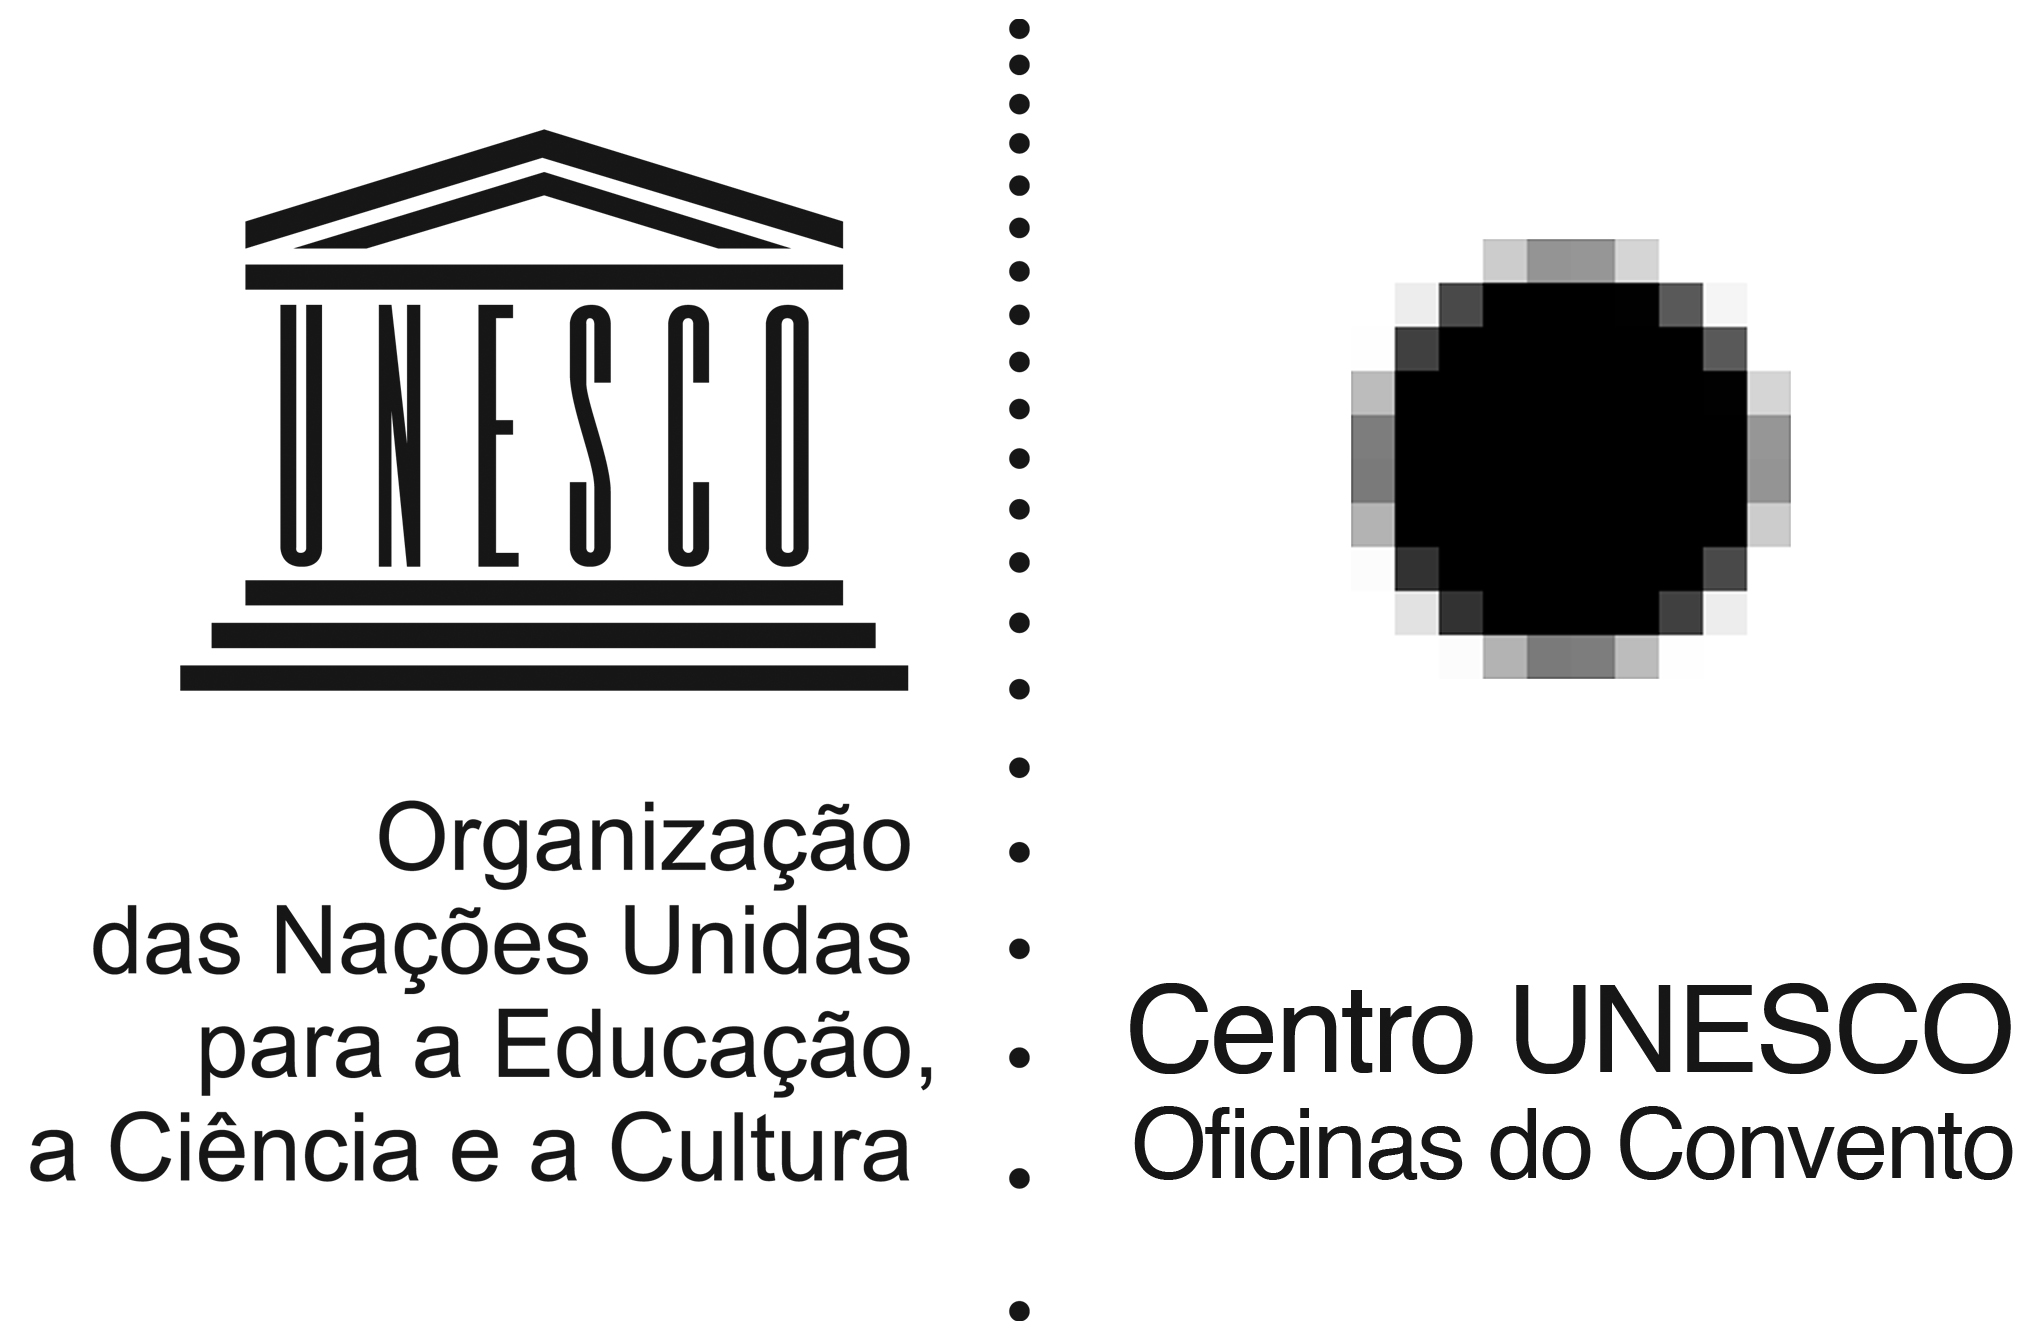 centro unesco oficinas do convento